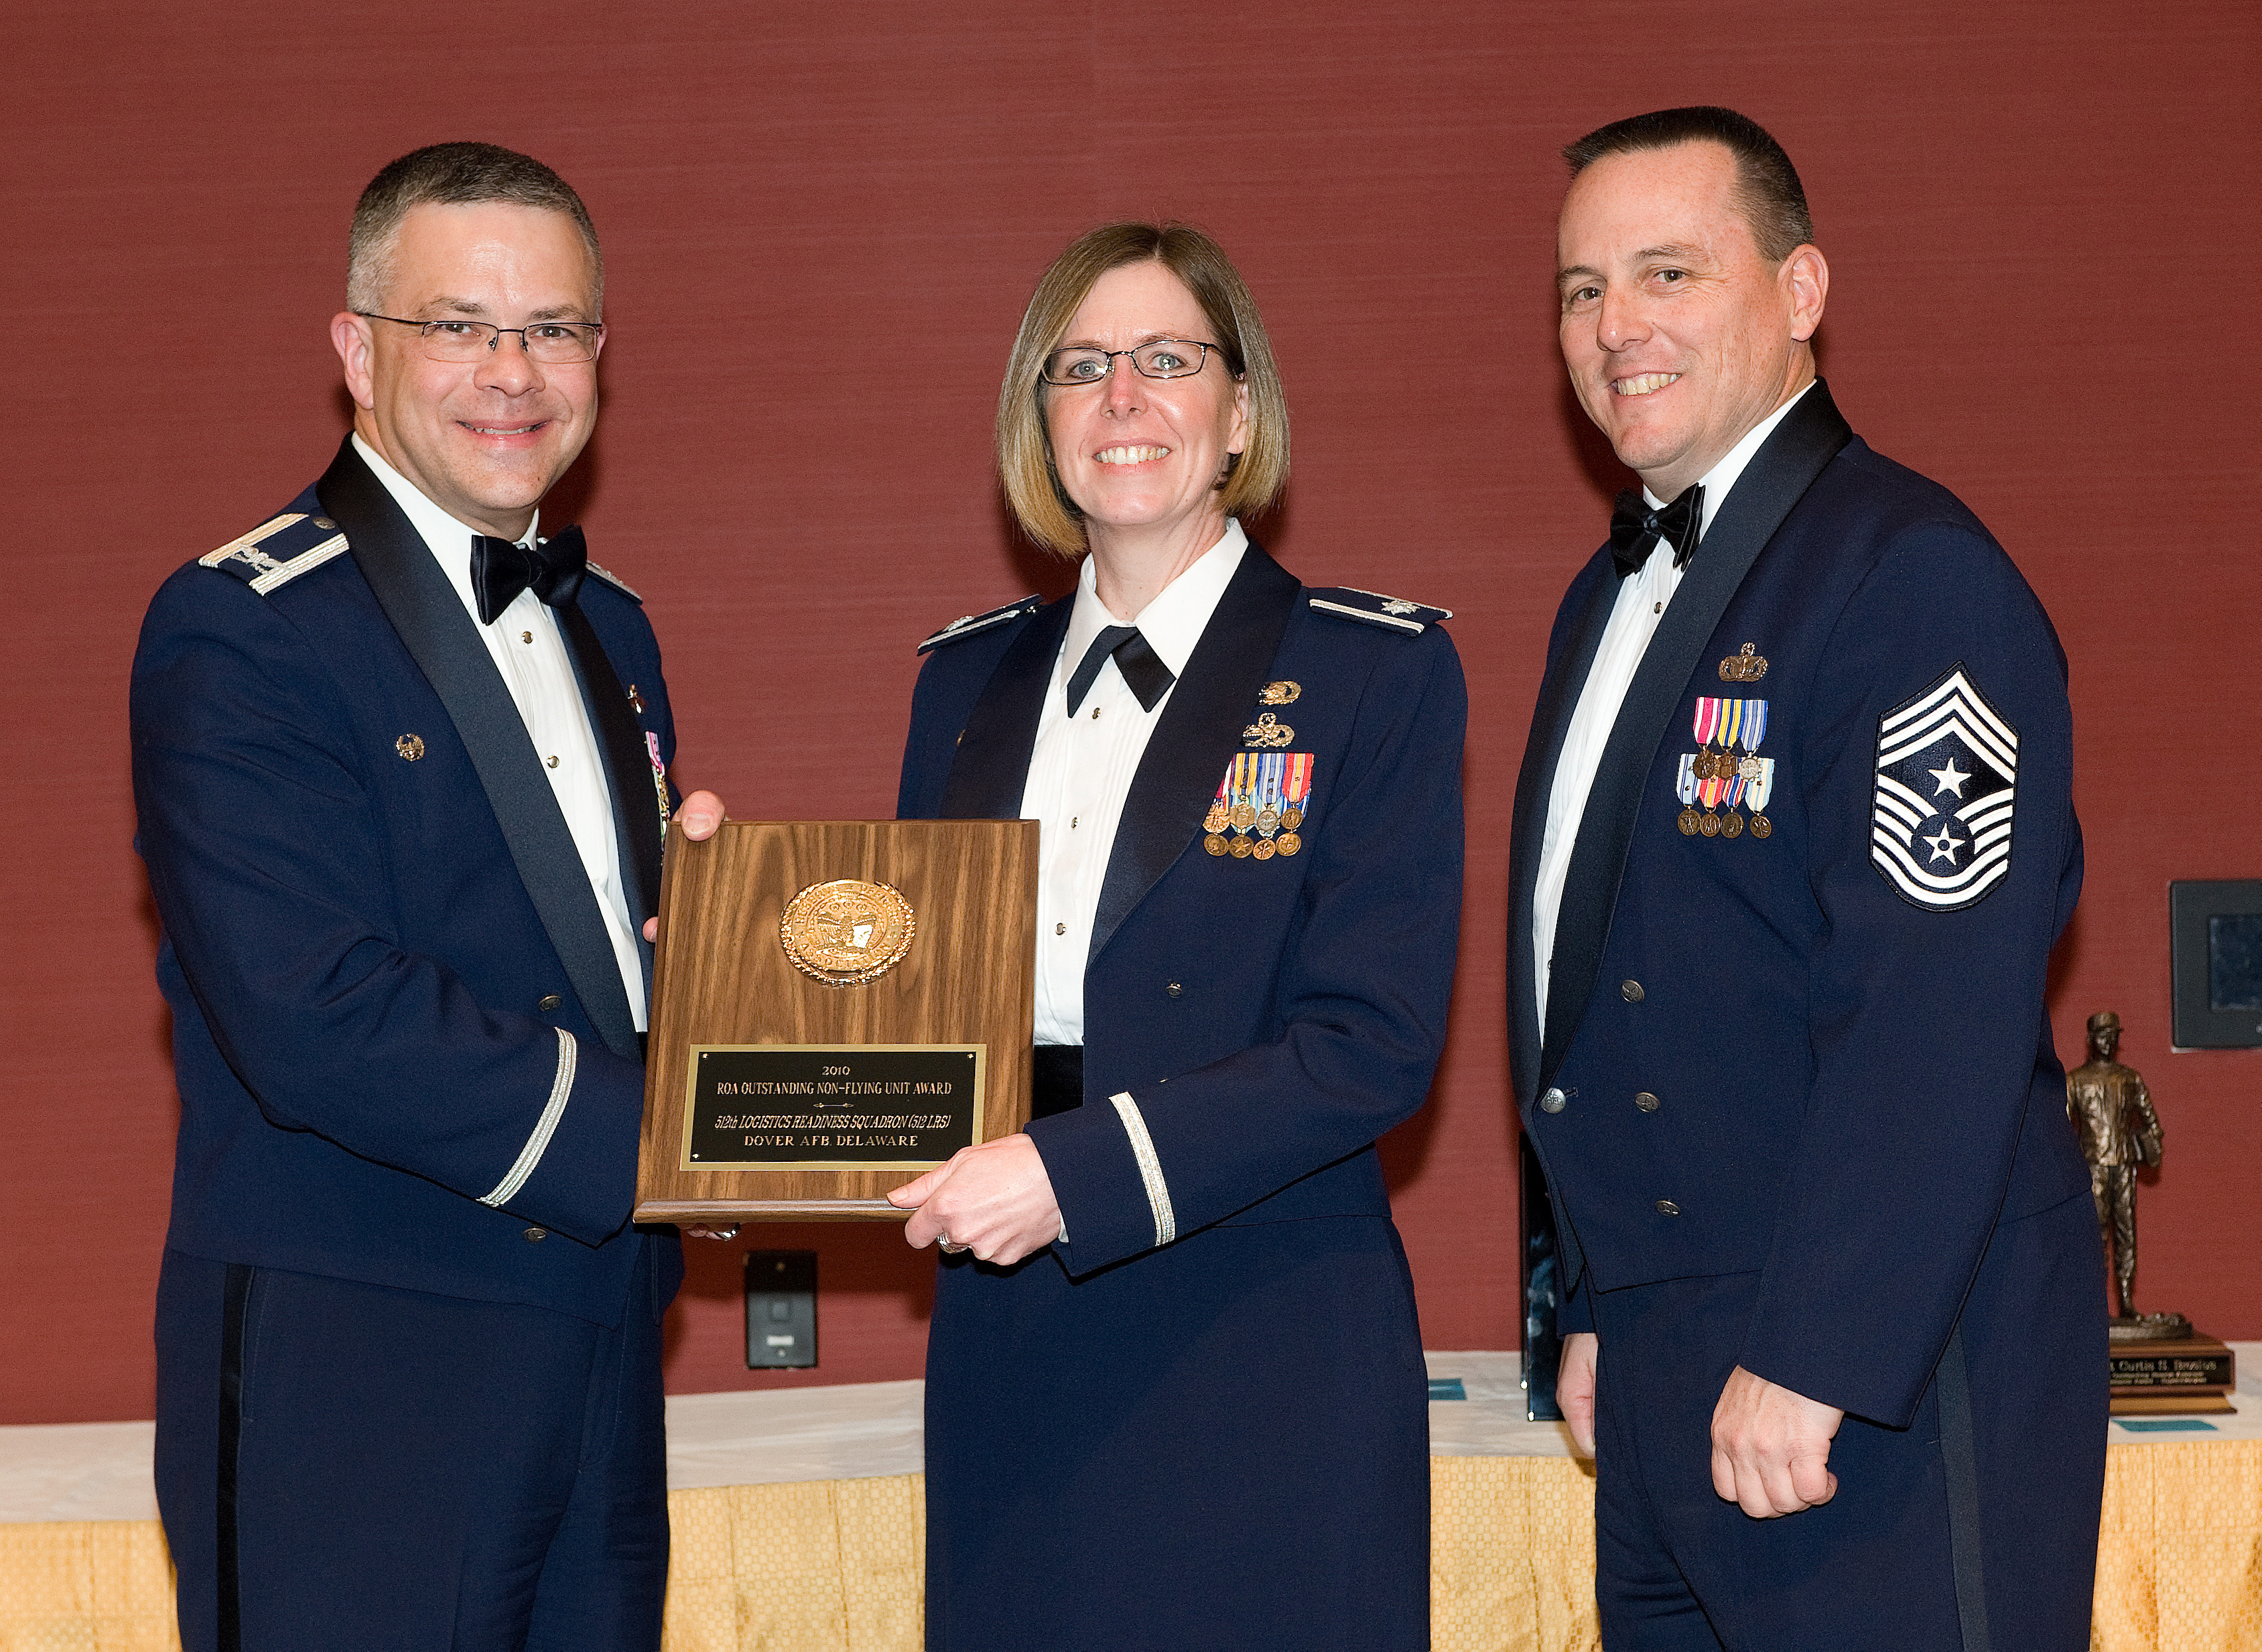 Lt. Col. Gretchen Wiltse, 512th Mission Support Group Commander, Accepts  The The ?